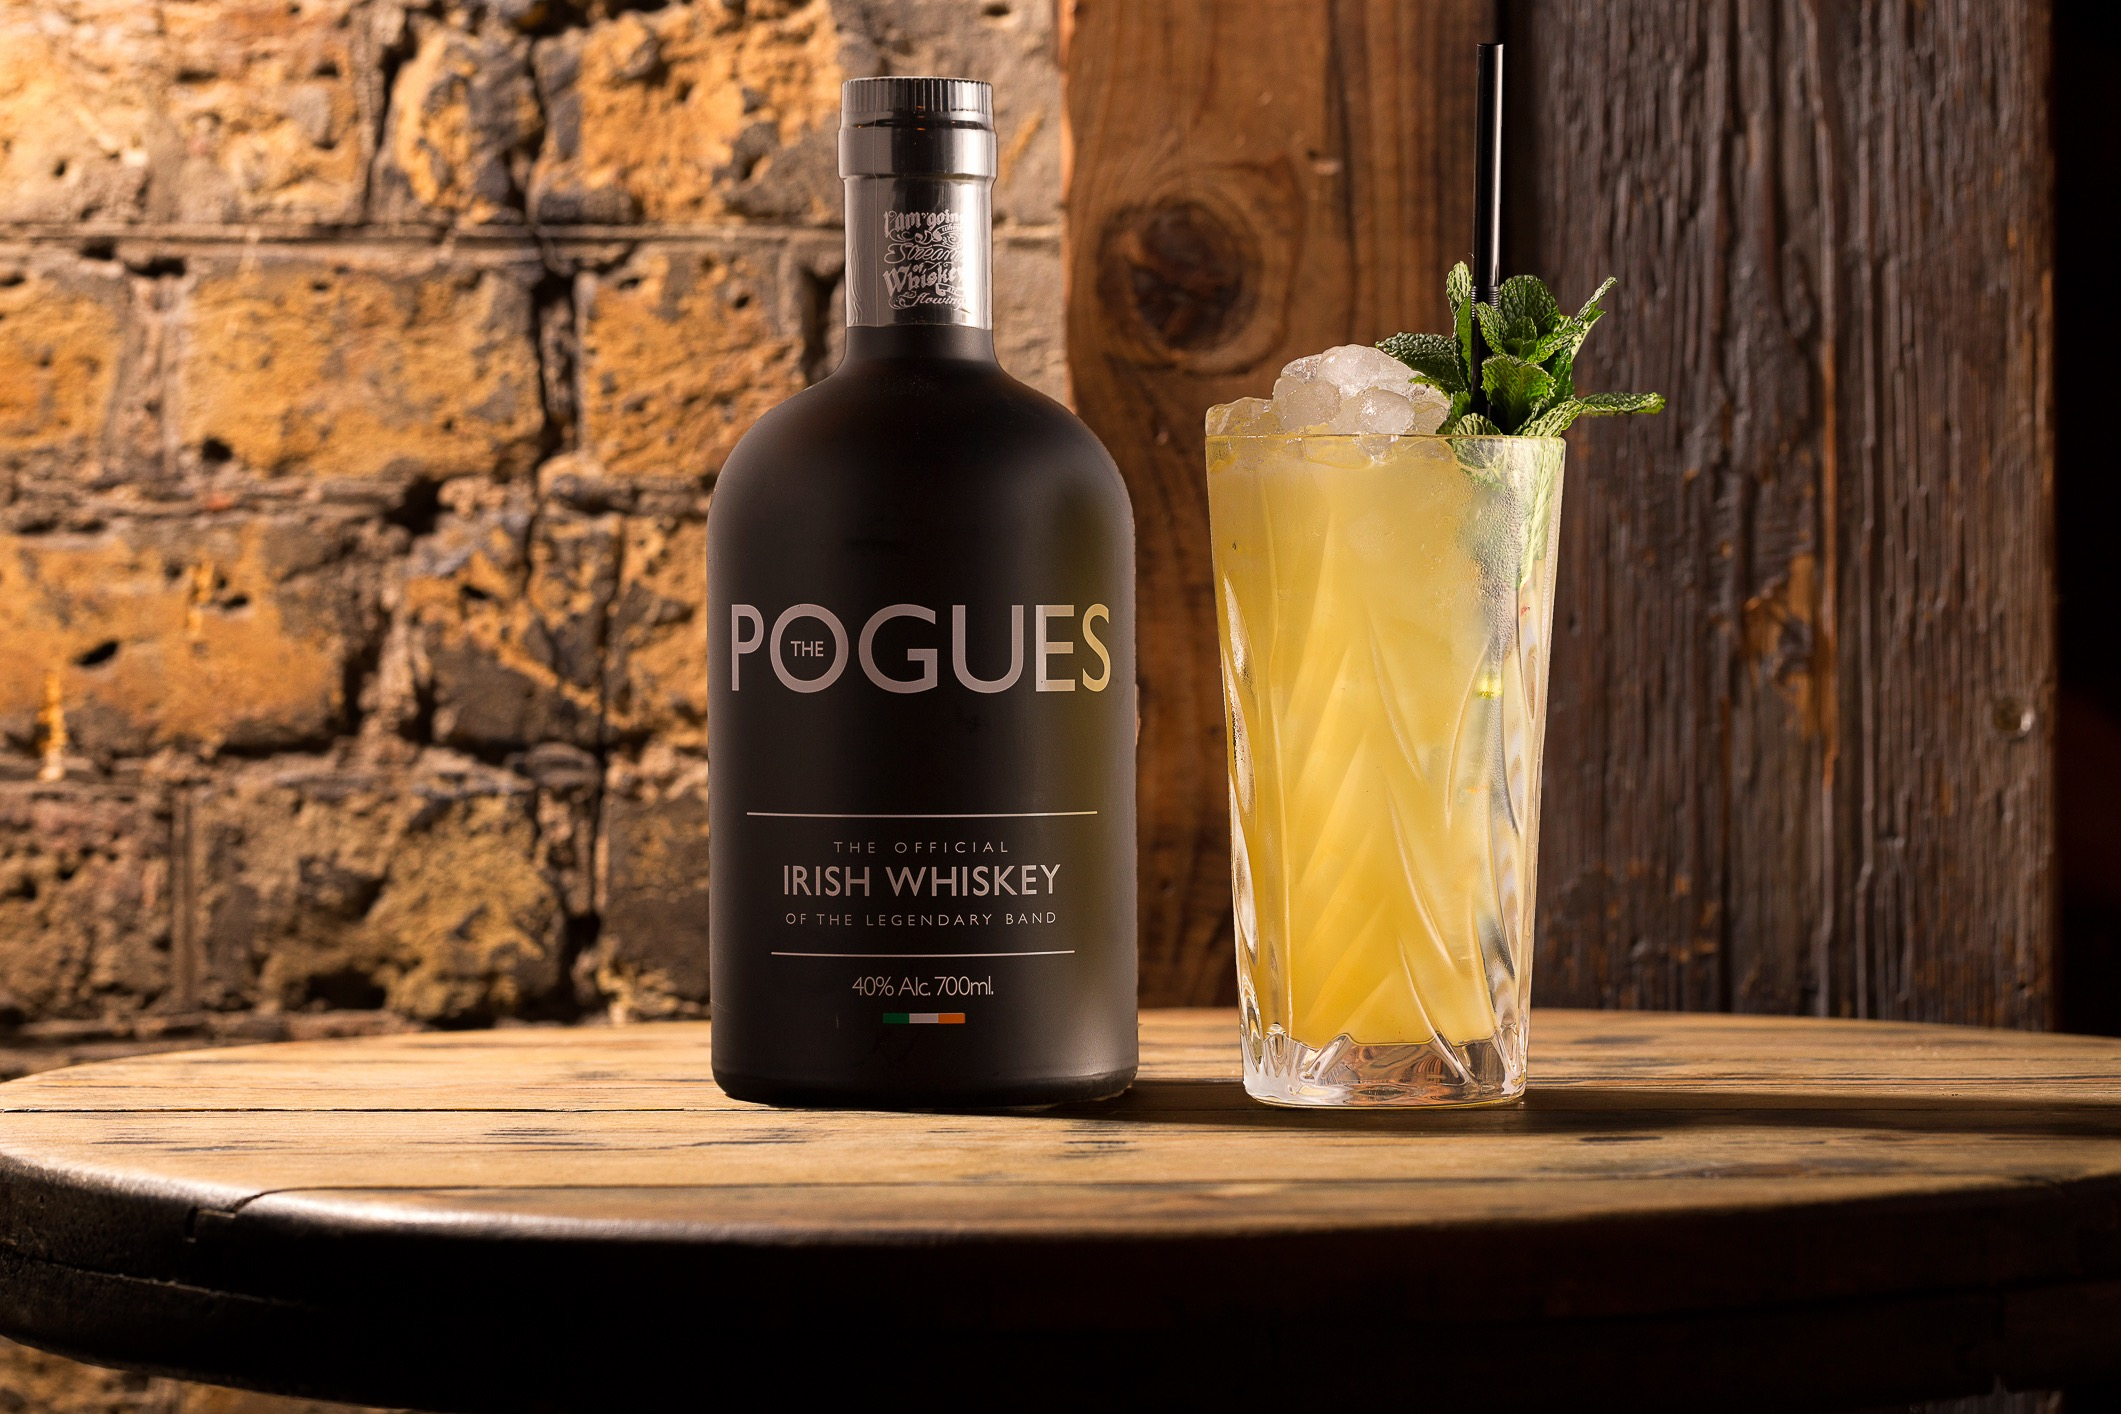 The Pogues_ The Whiskey Ginger2